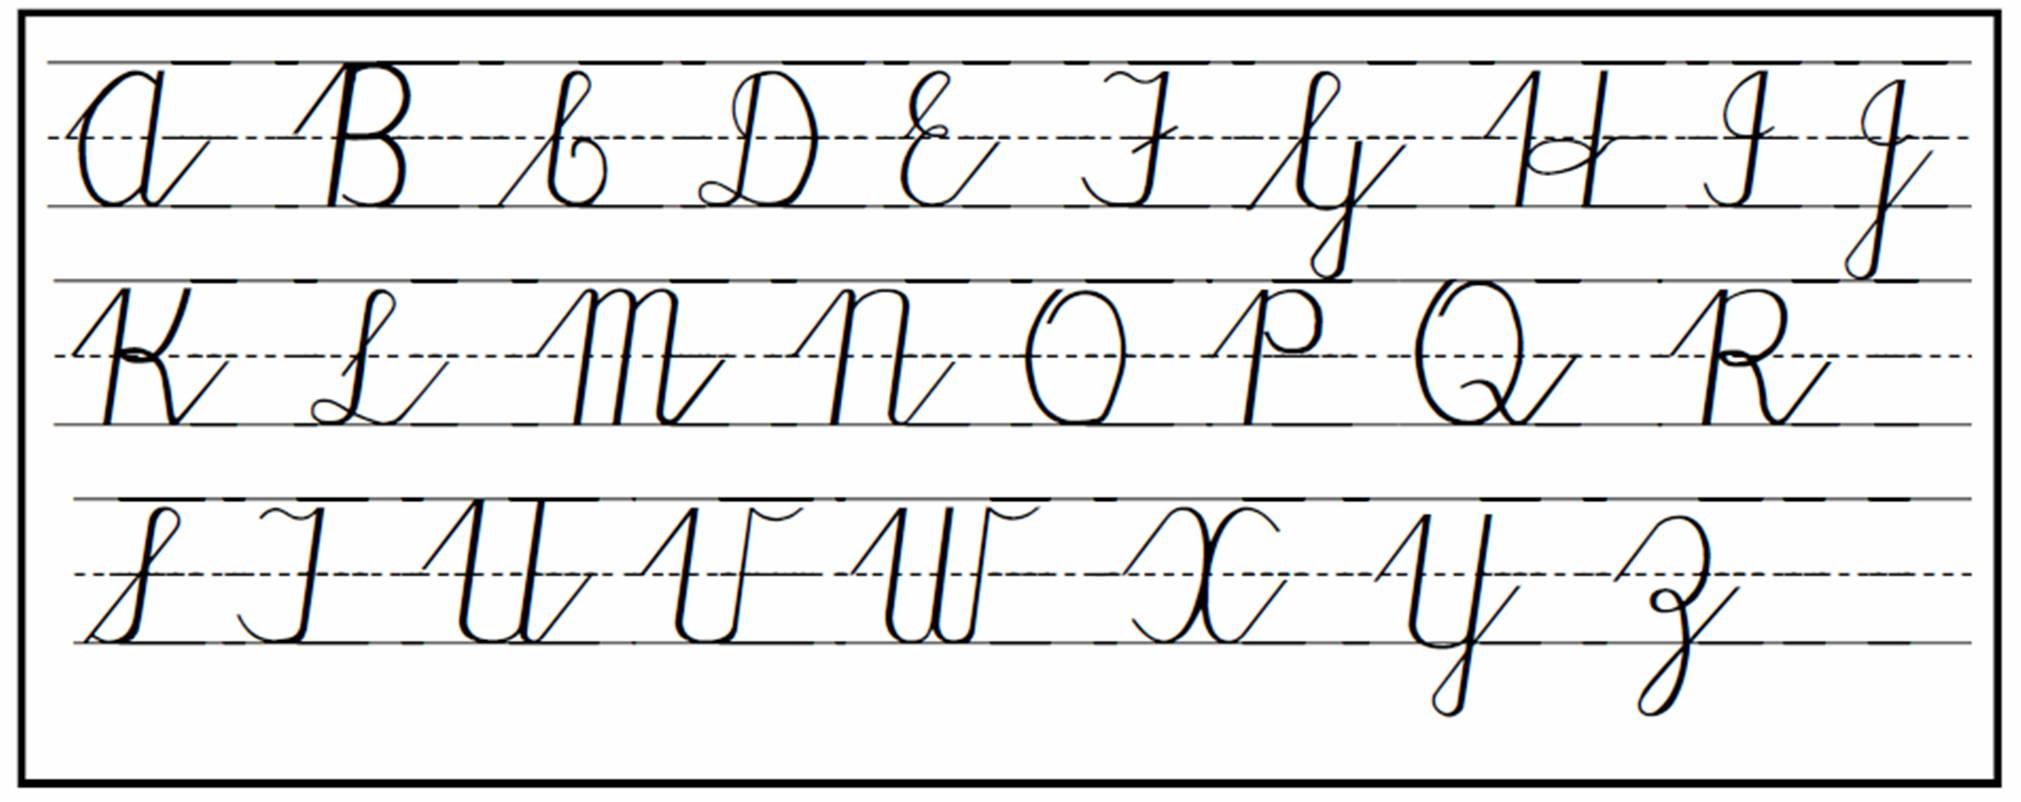 Cursive Handwriting ~ step-by-step for beginners ...